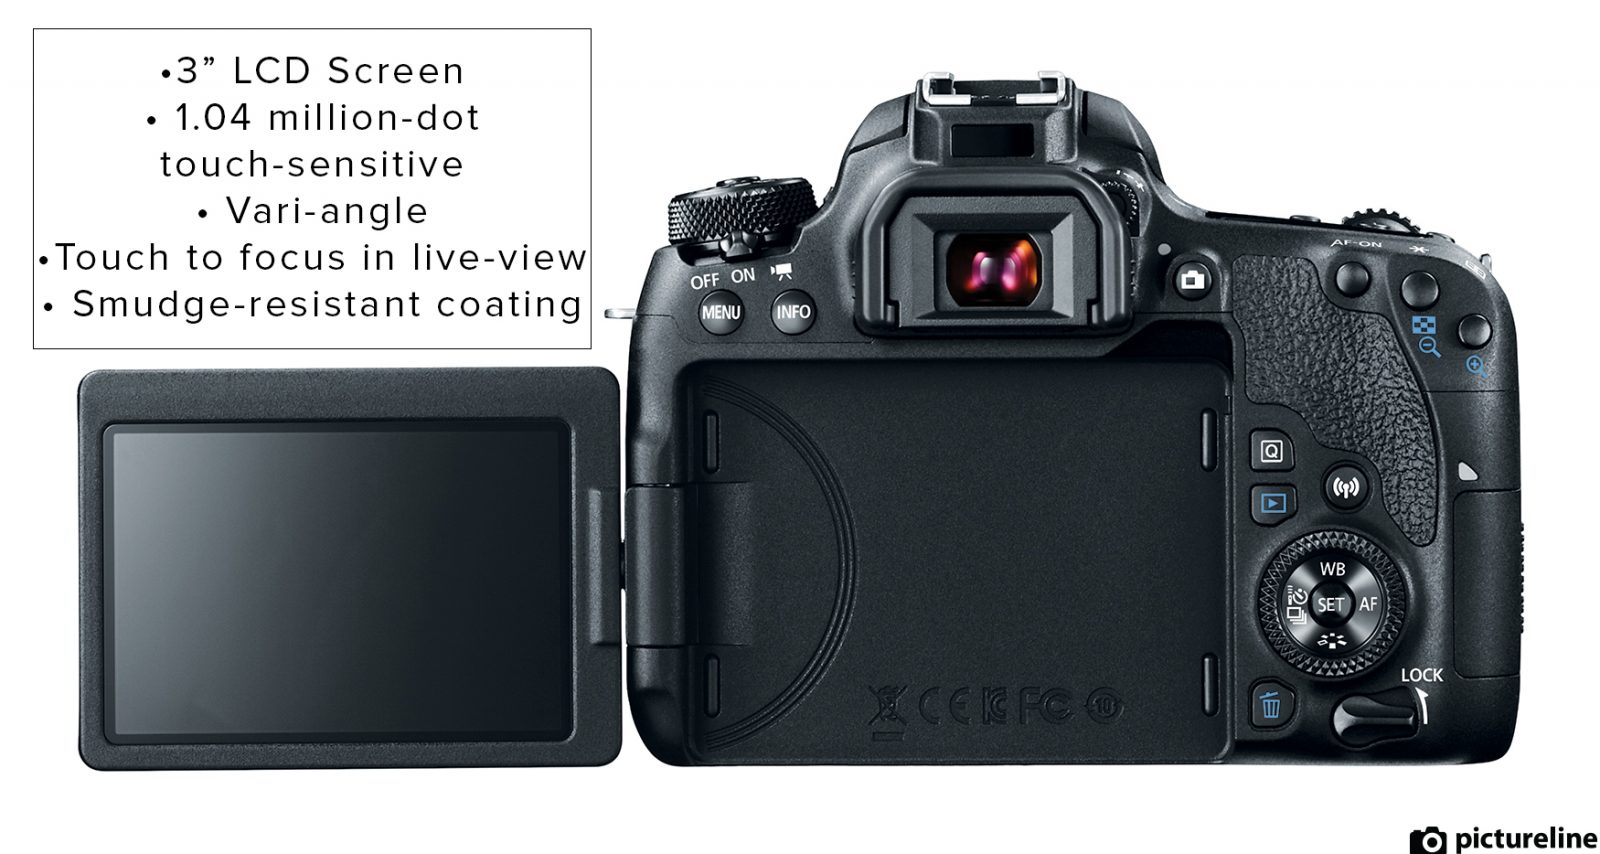 Picture Lockable Rear Control Is A Feature That You Geton Models Like It Enables You To New Canon Eos What To Line 77d Vs 80d Pantip 77d Vs 80d Snapsort dpreview 77d Vs 80d